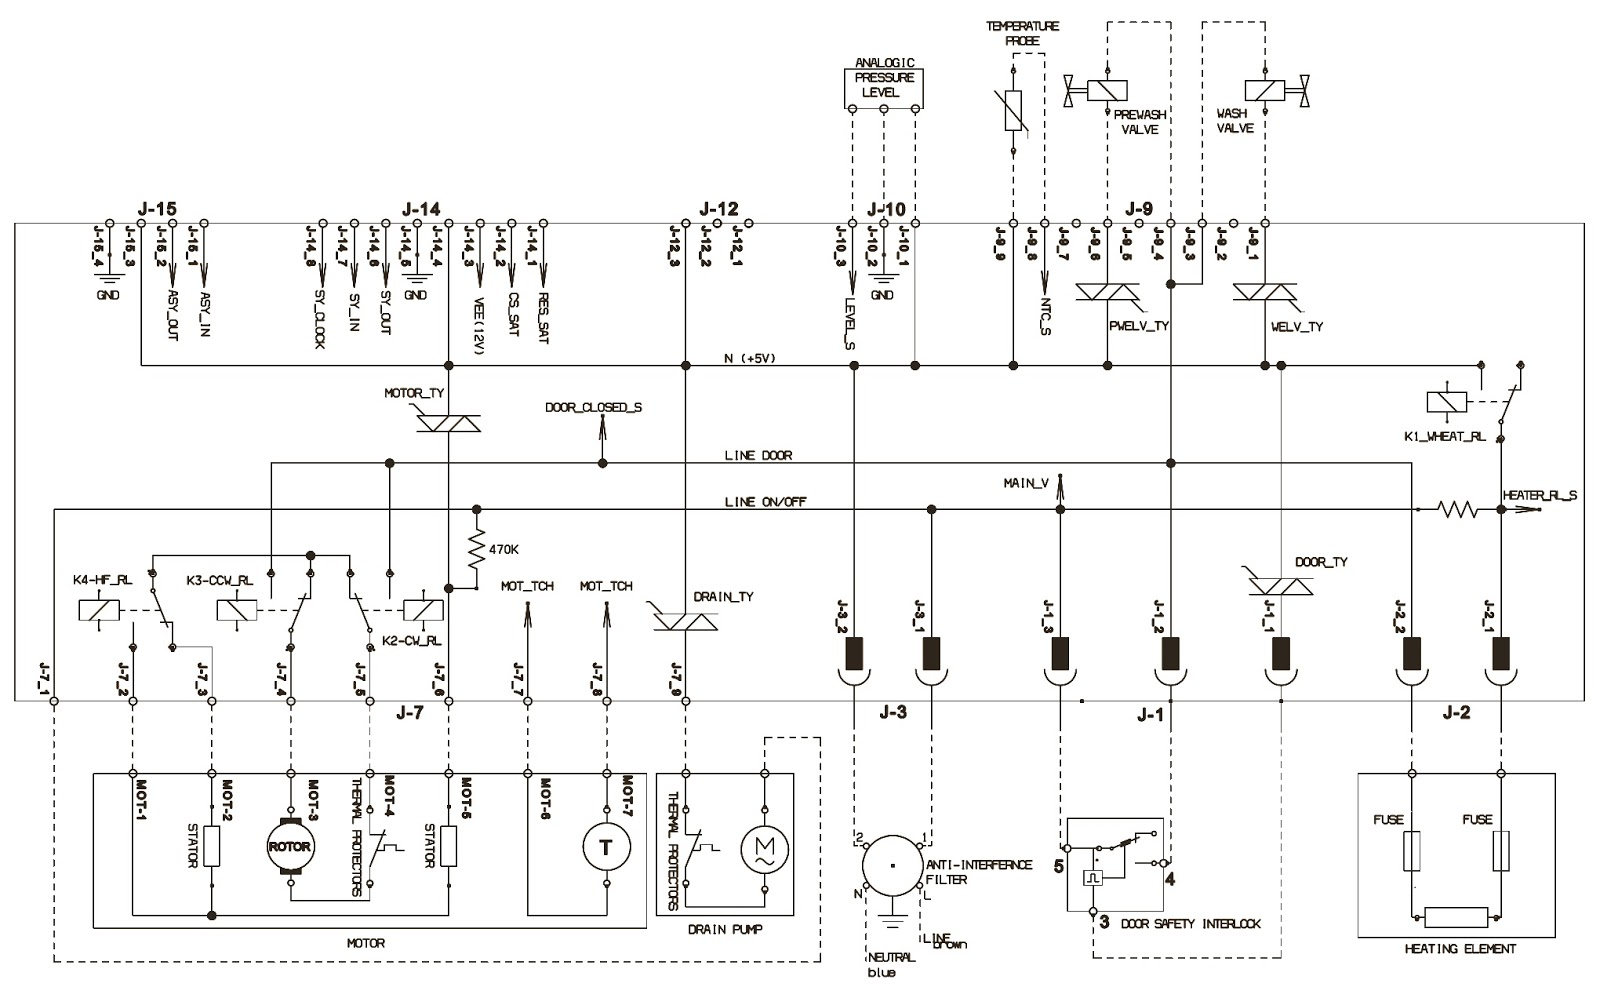 Electrolux Rm212f Wiring Diagram 95 Dodge Ram 3500 Radio 25 Images